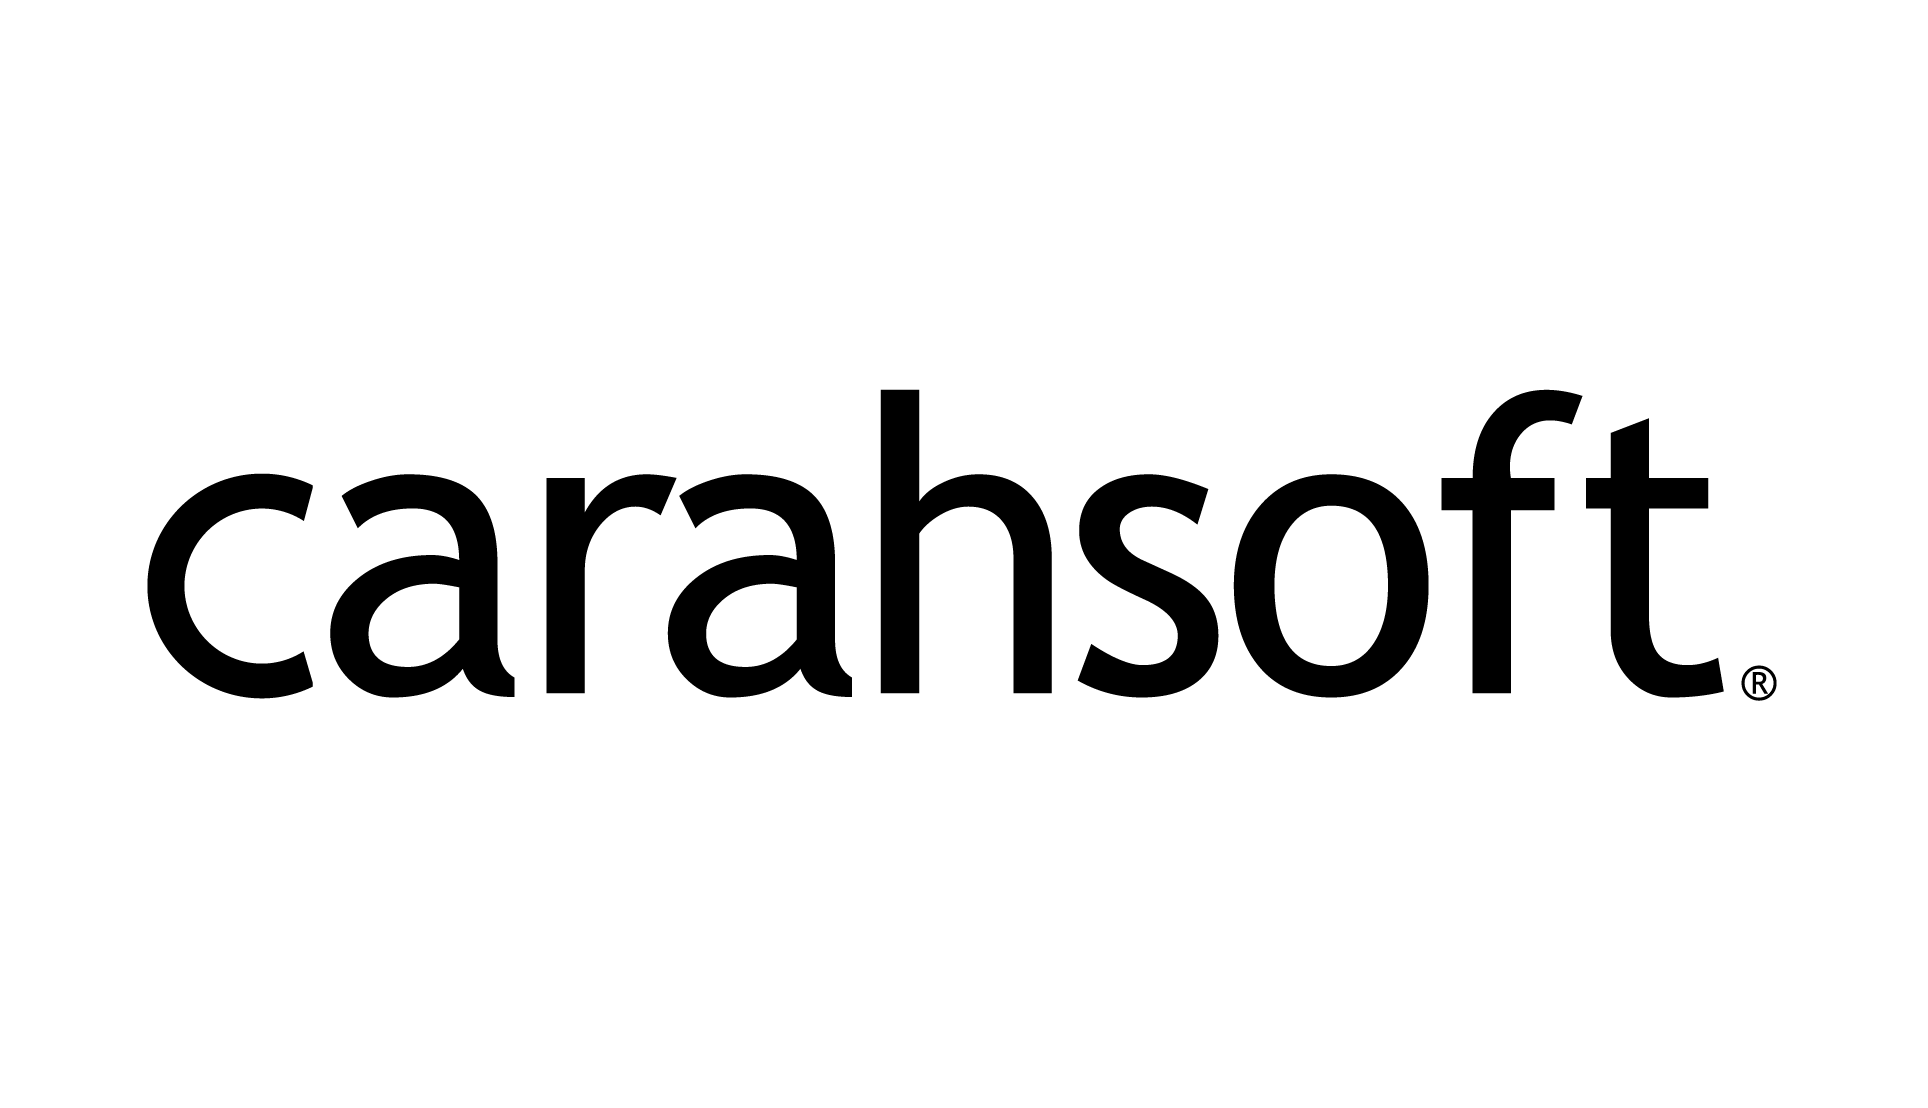 Carahsoft_logo